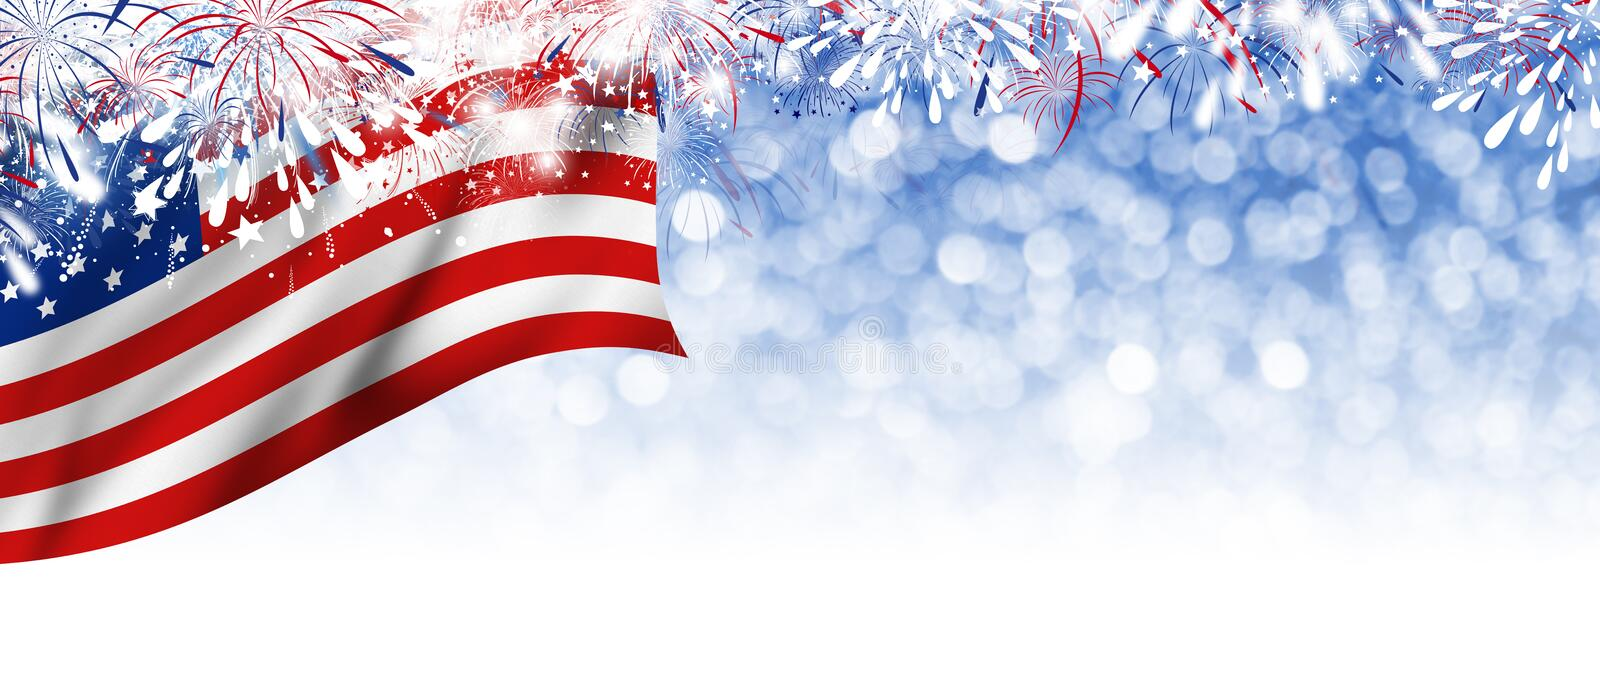 USA 4 july independence day design of america flag and fireworks royalty free illustration